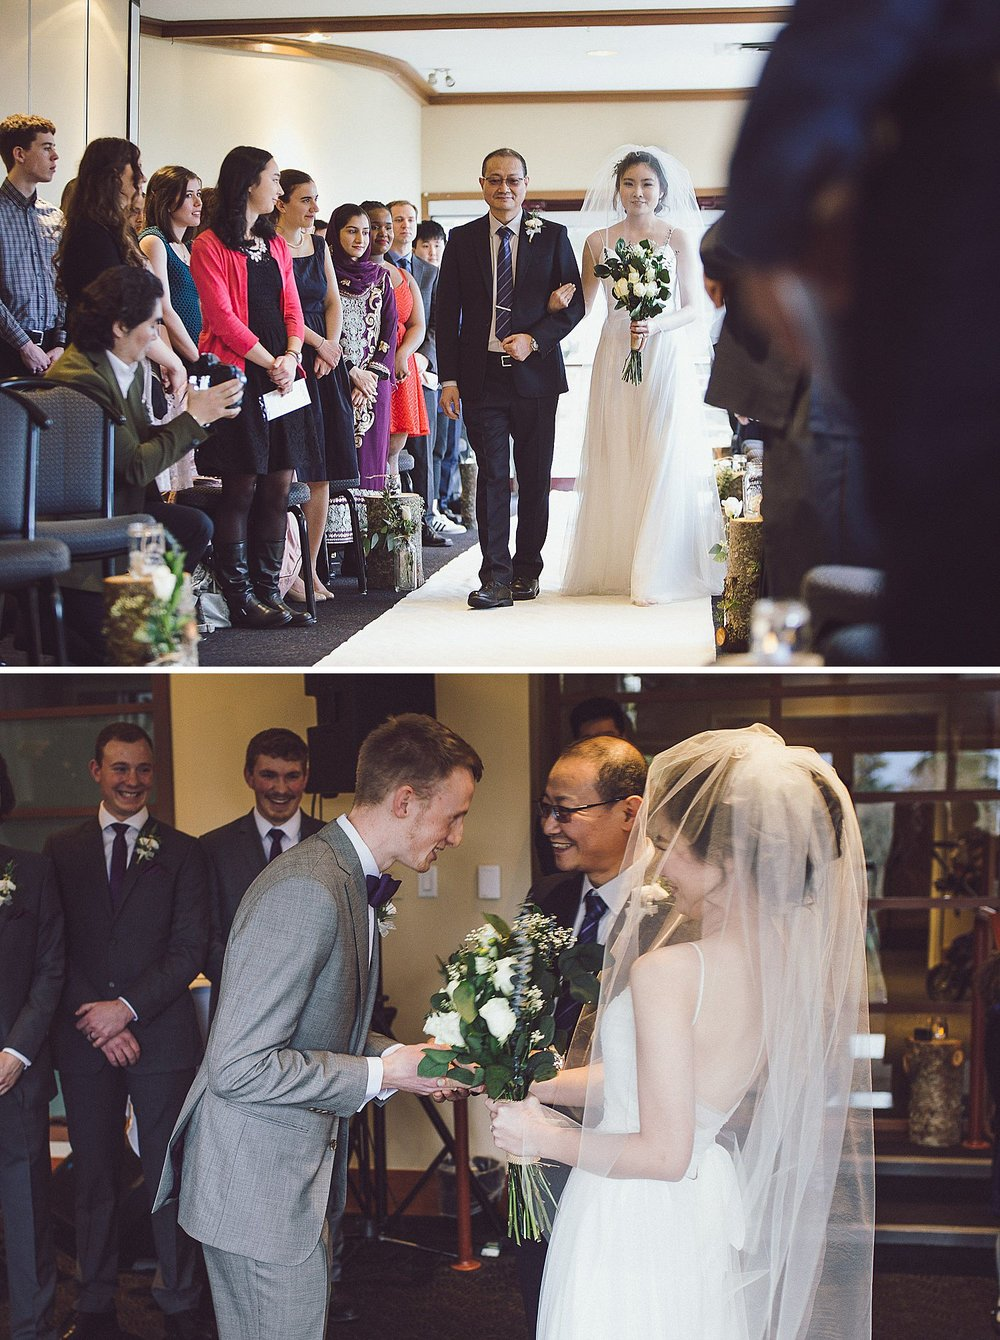 Angel's father walks her down the aisle to Tim